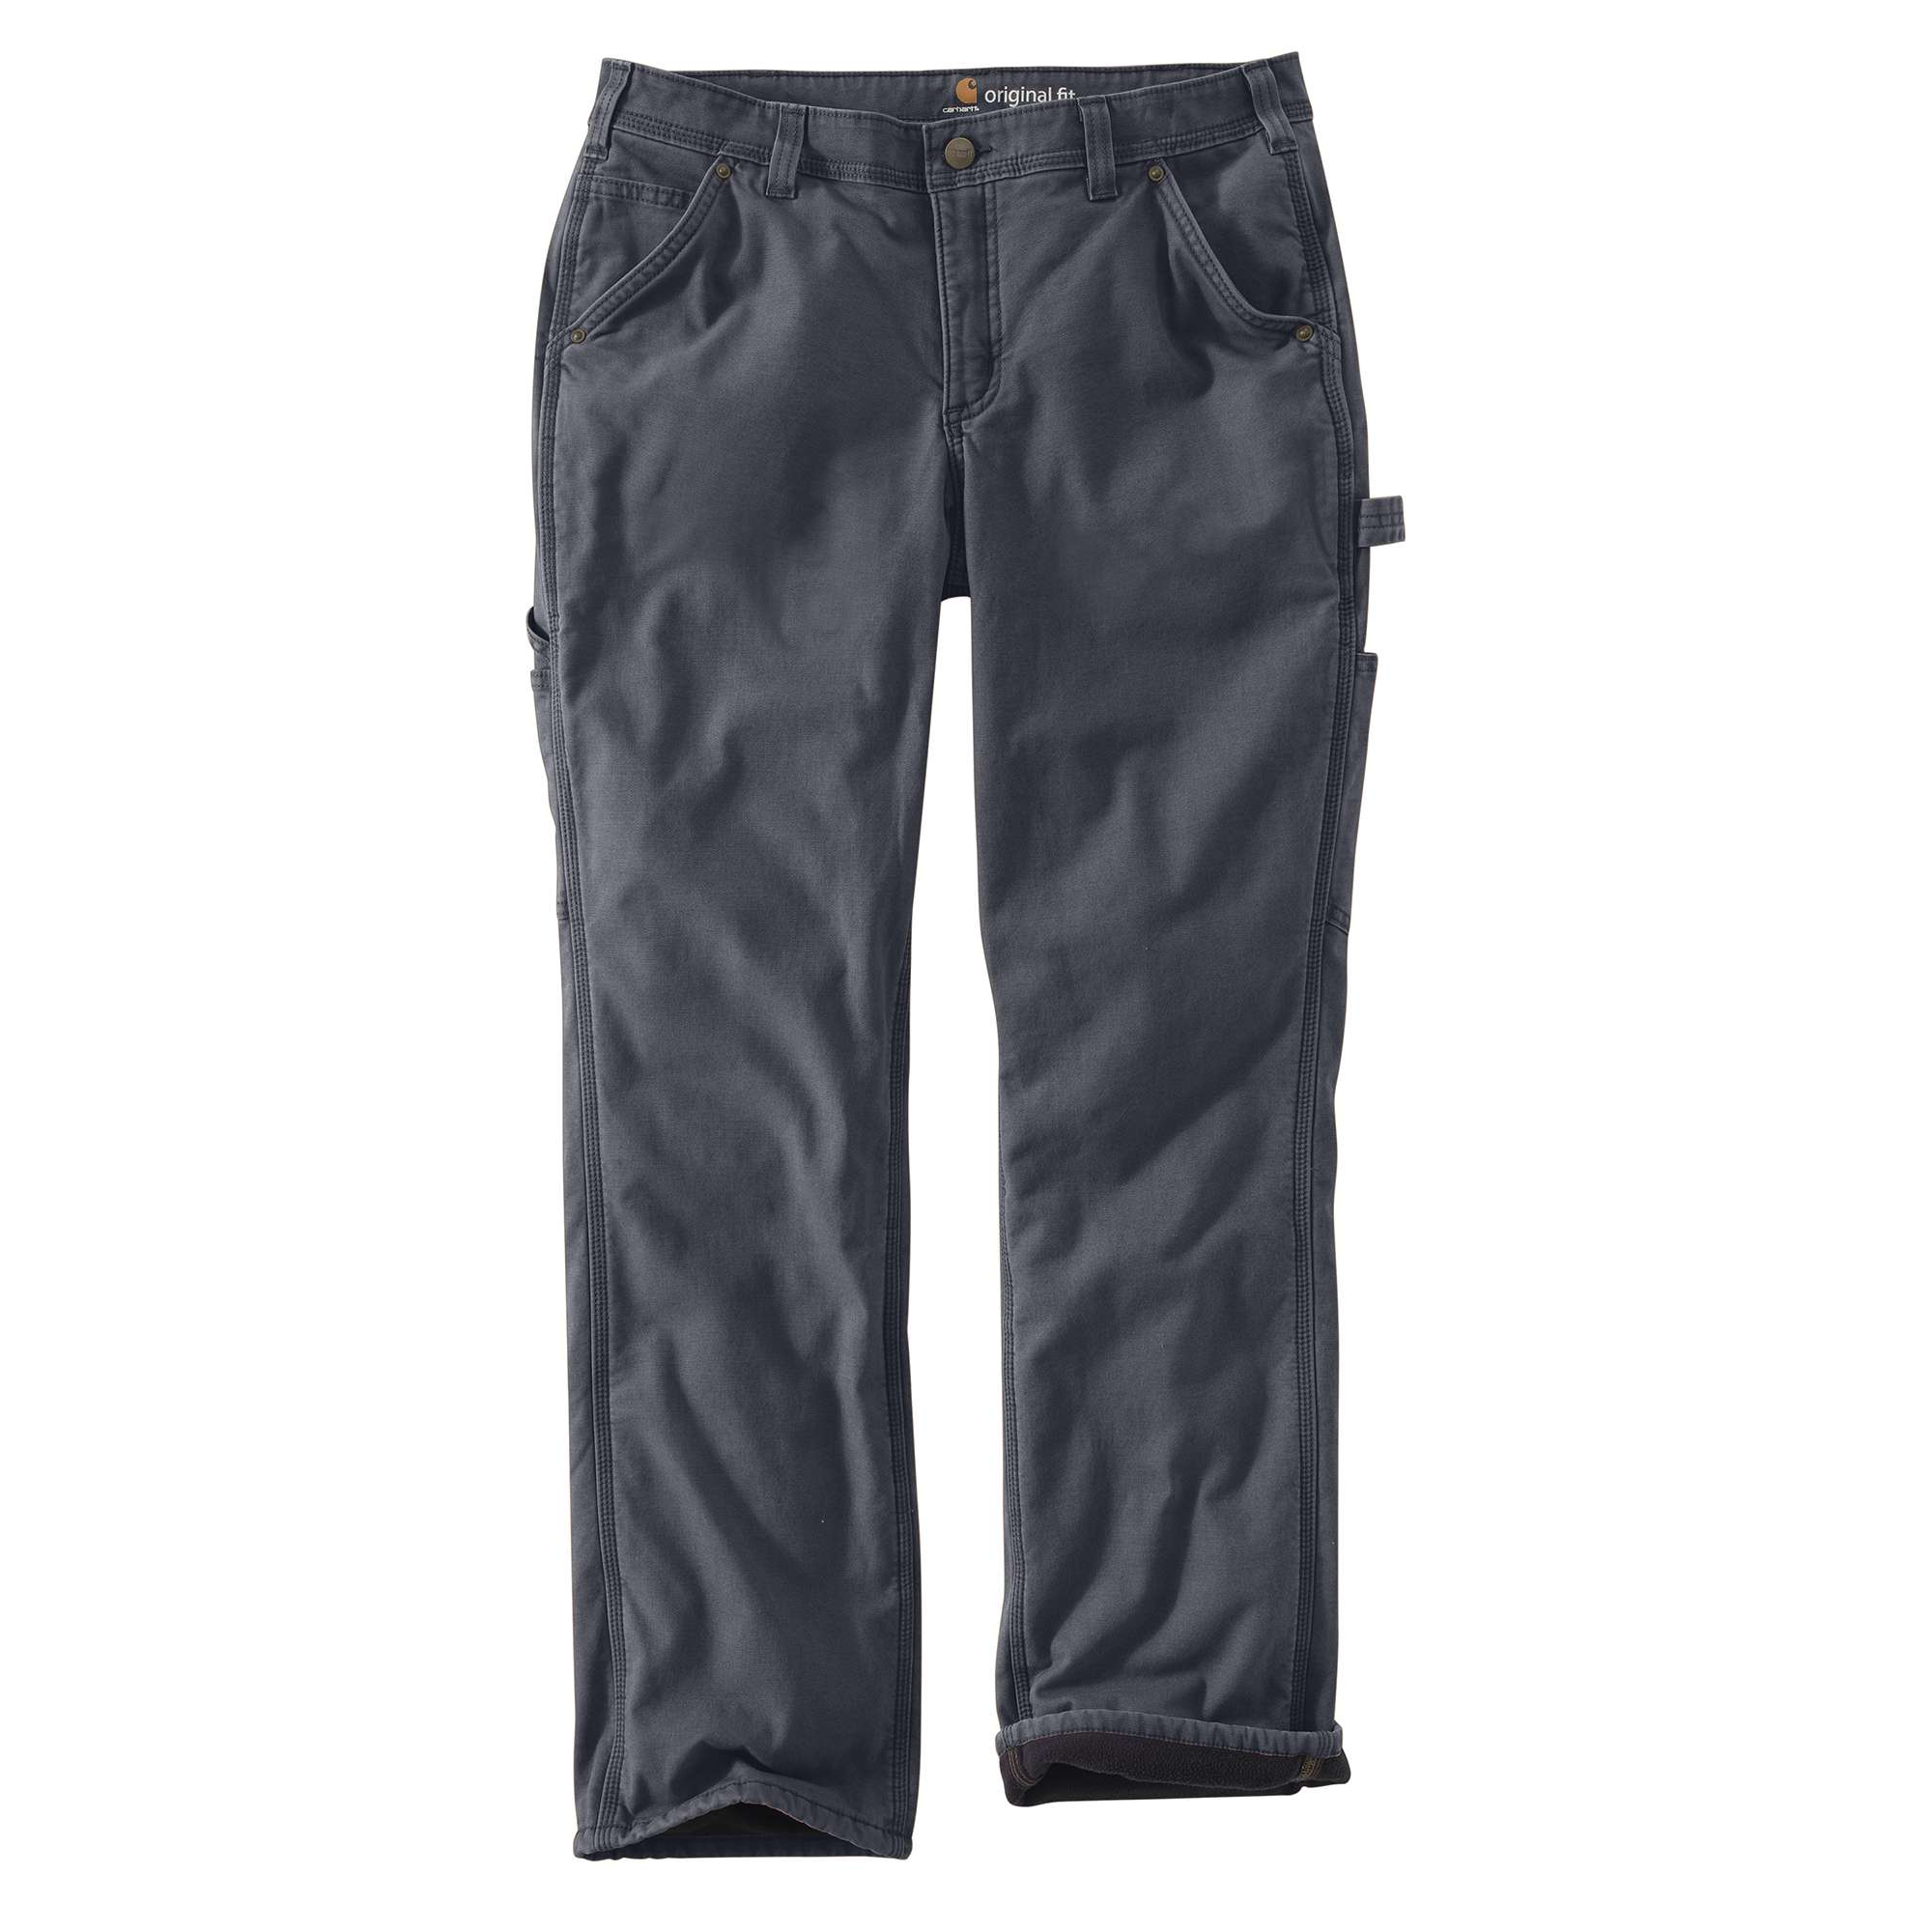 WOMEN'S FLEECE-LINED CRAWFORD PANTS